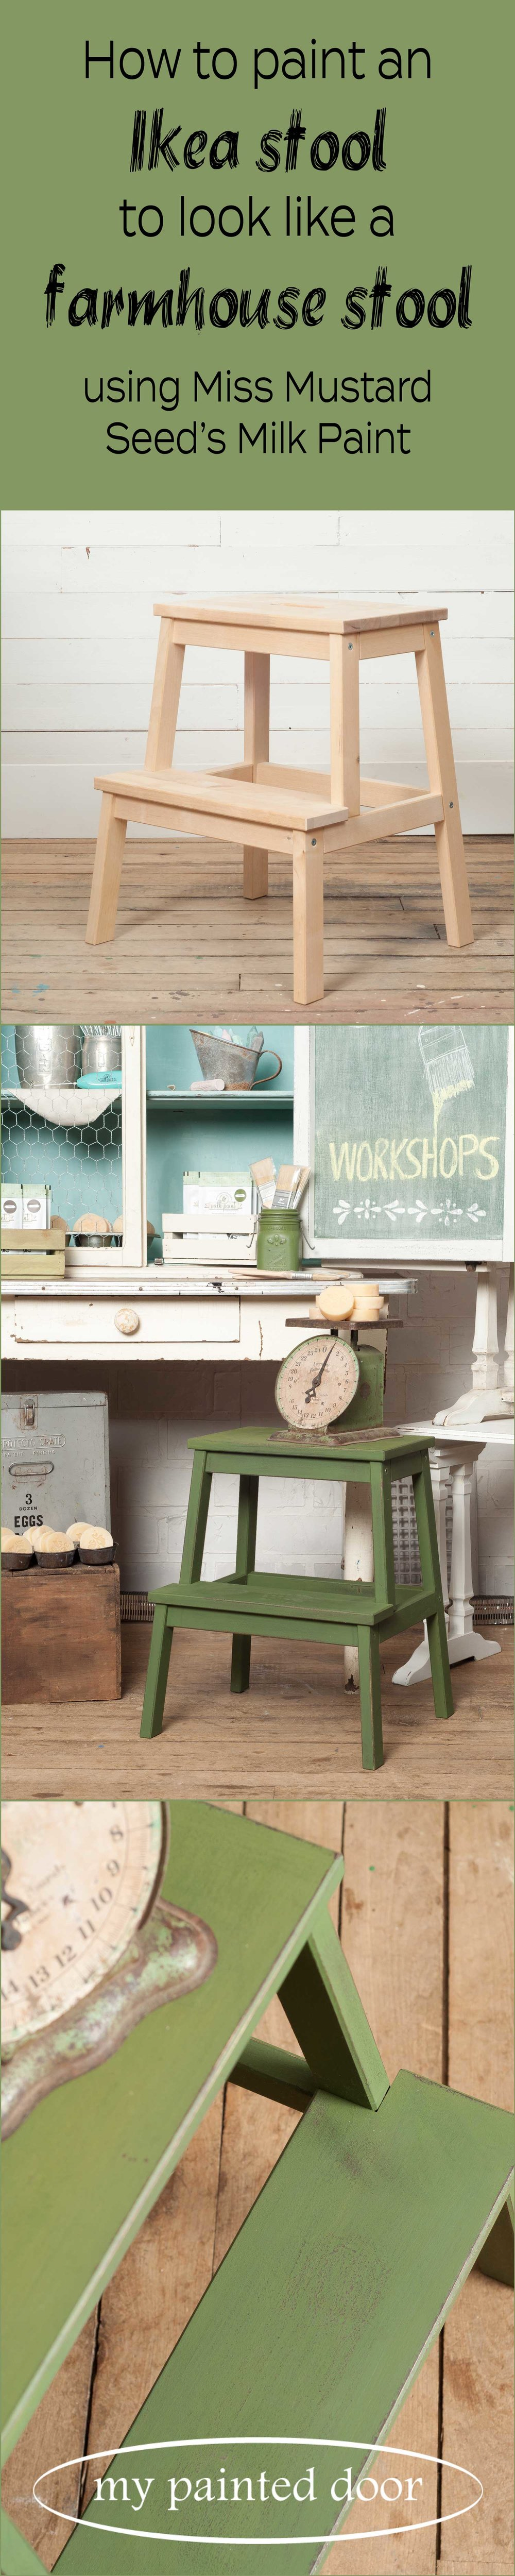 Ikea hack! Learn how to paint an Ikea stool to make it look like a farmhouse stool. Stool painted in Miss Mustard Seed's Milk Paint in the colour Boxwood.